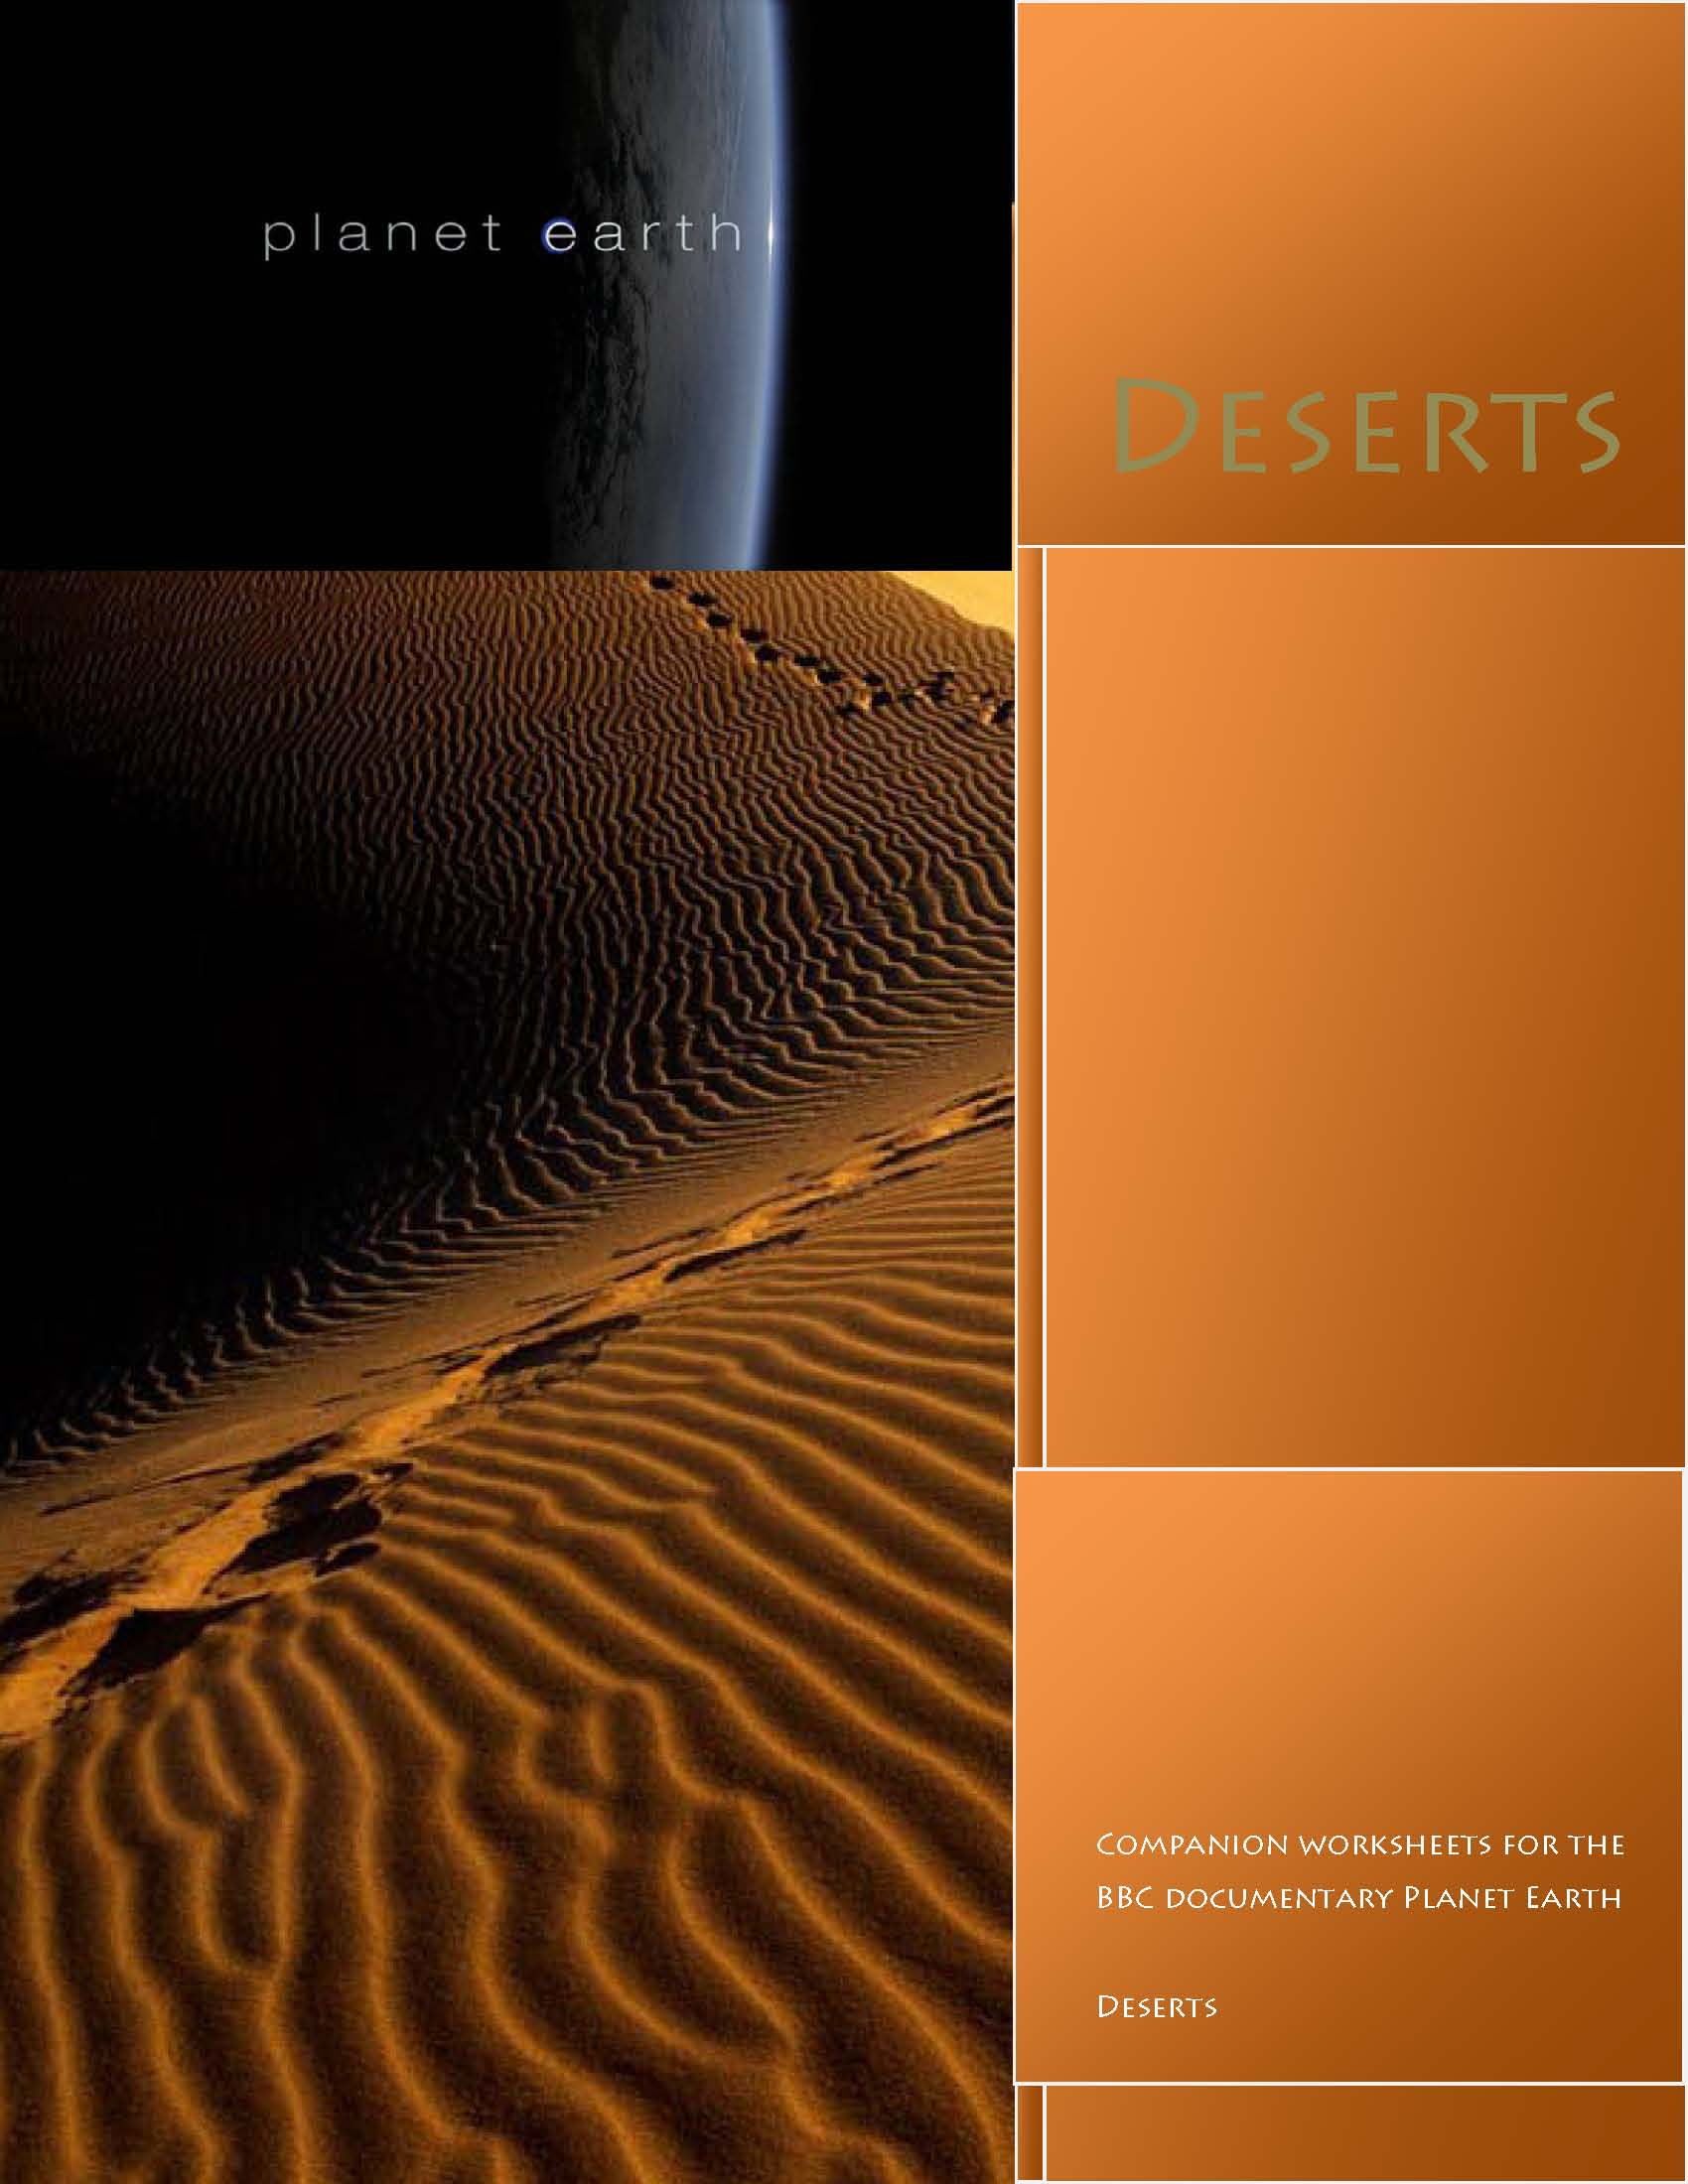 Worksheets Planet Earth Worksheets bbc planet earth deserts worksheets schoolwithdad jungles worksheets